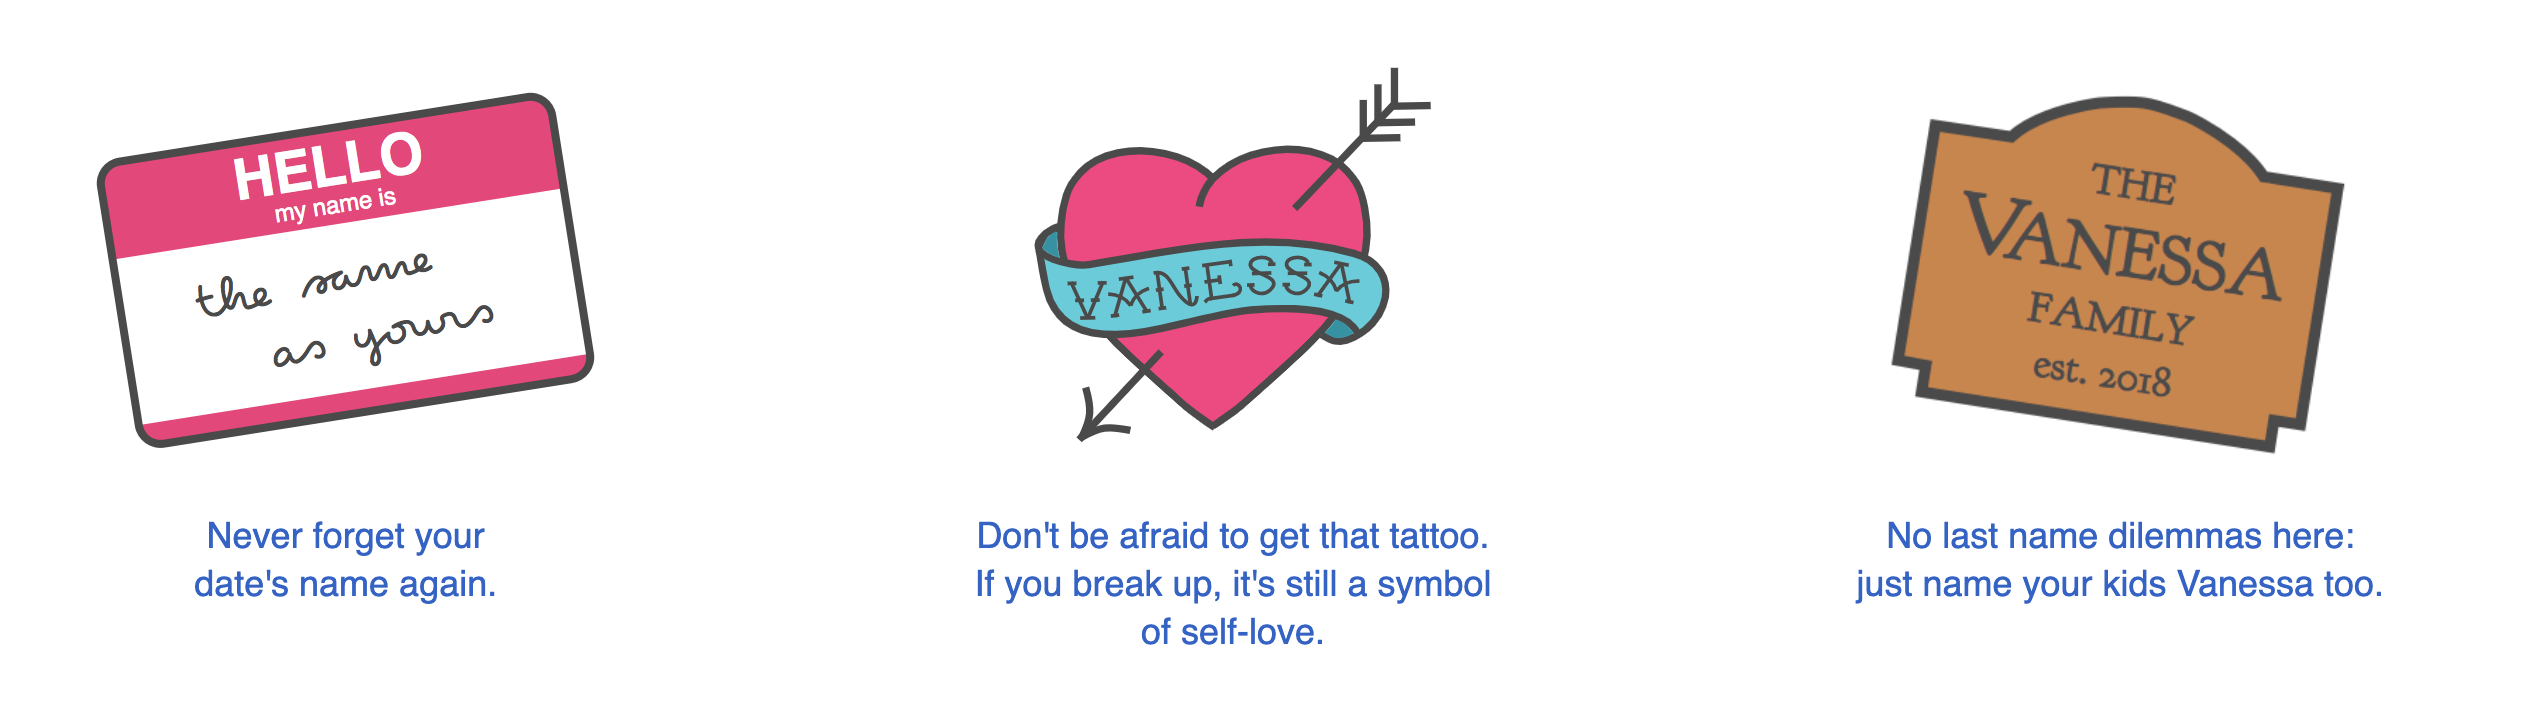 """""""Never forget your date's name again!"""" """"Don't be afraid to get that tattoo - if you break up, it's still a symbol of self-love."""" """"No last name dilemmas here; just name your kids Vanessa too."""""""